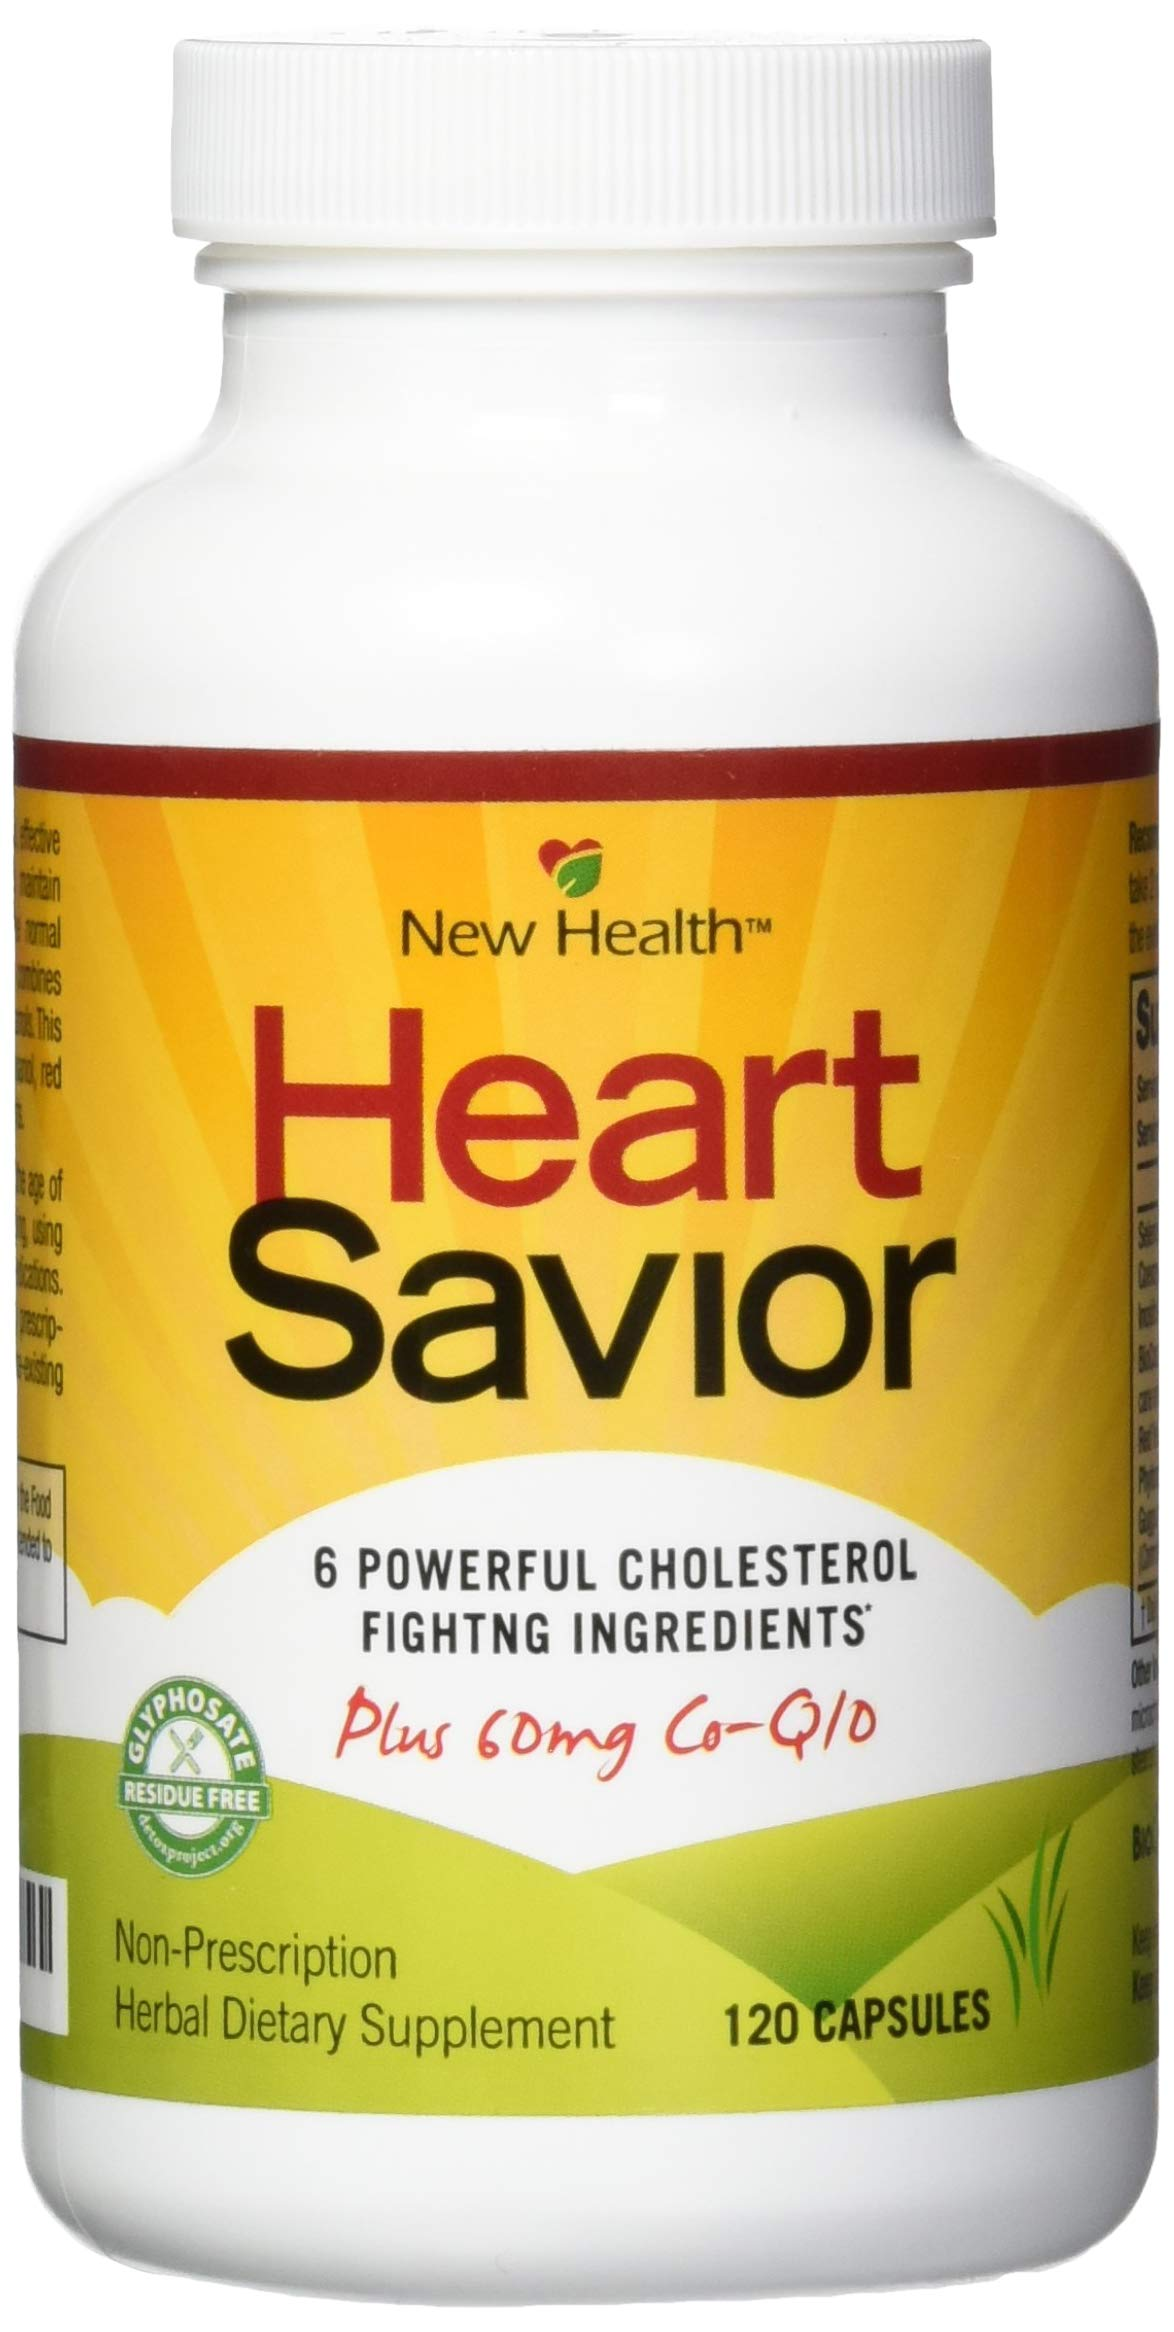 New Health HeartSavior Lower Cholesterol and Heart Health Supplement - Plant Sterols and 60mg of CoQ10 - 120 Capsules by Mountain Health